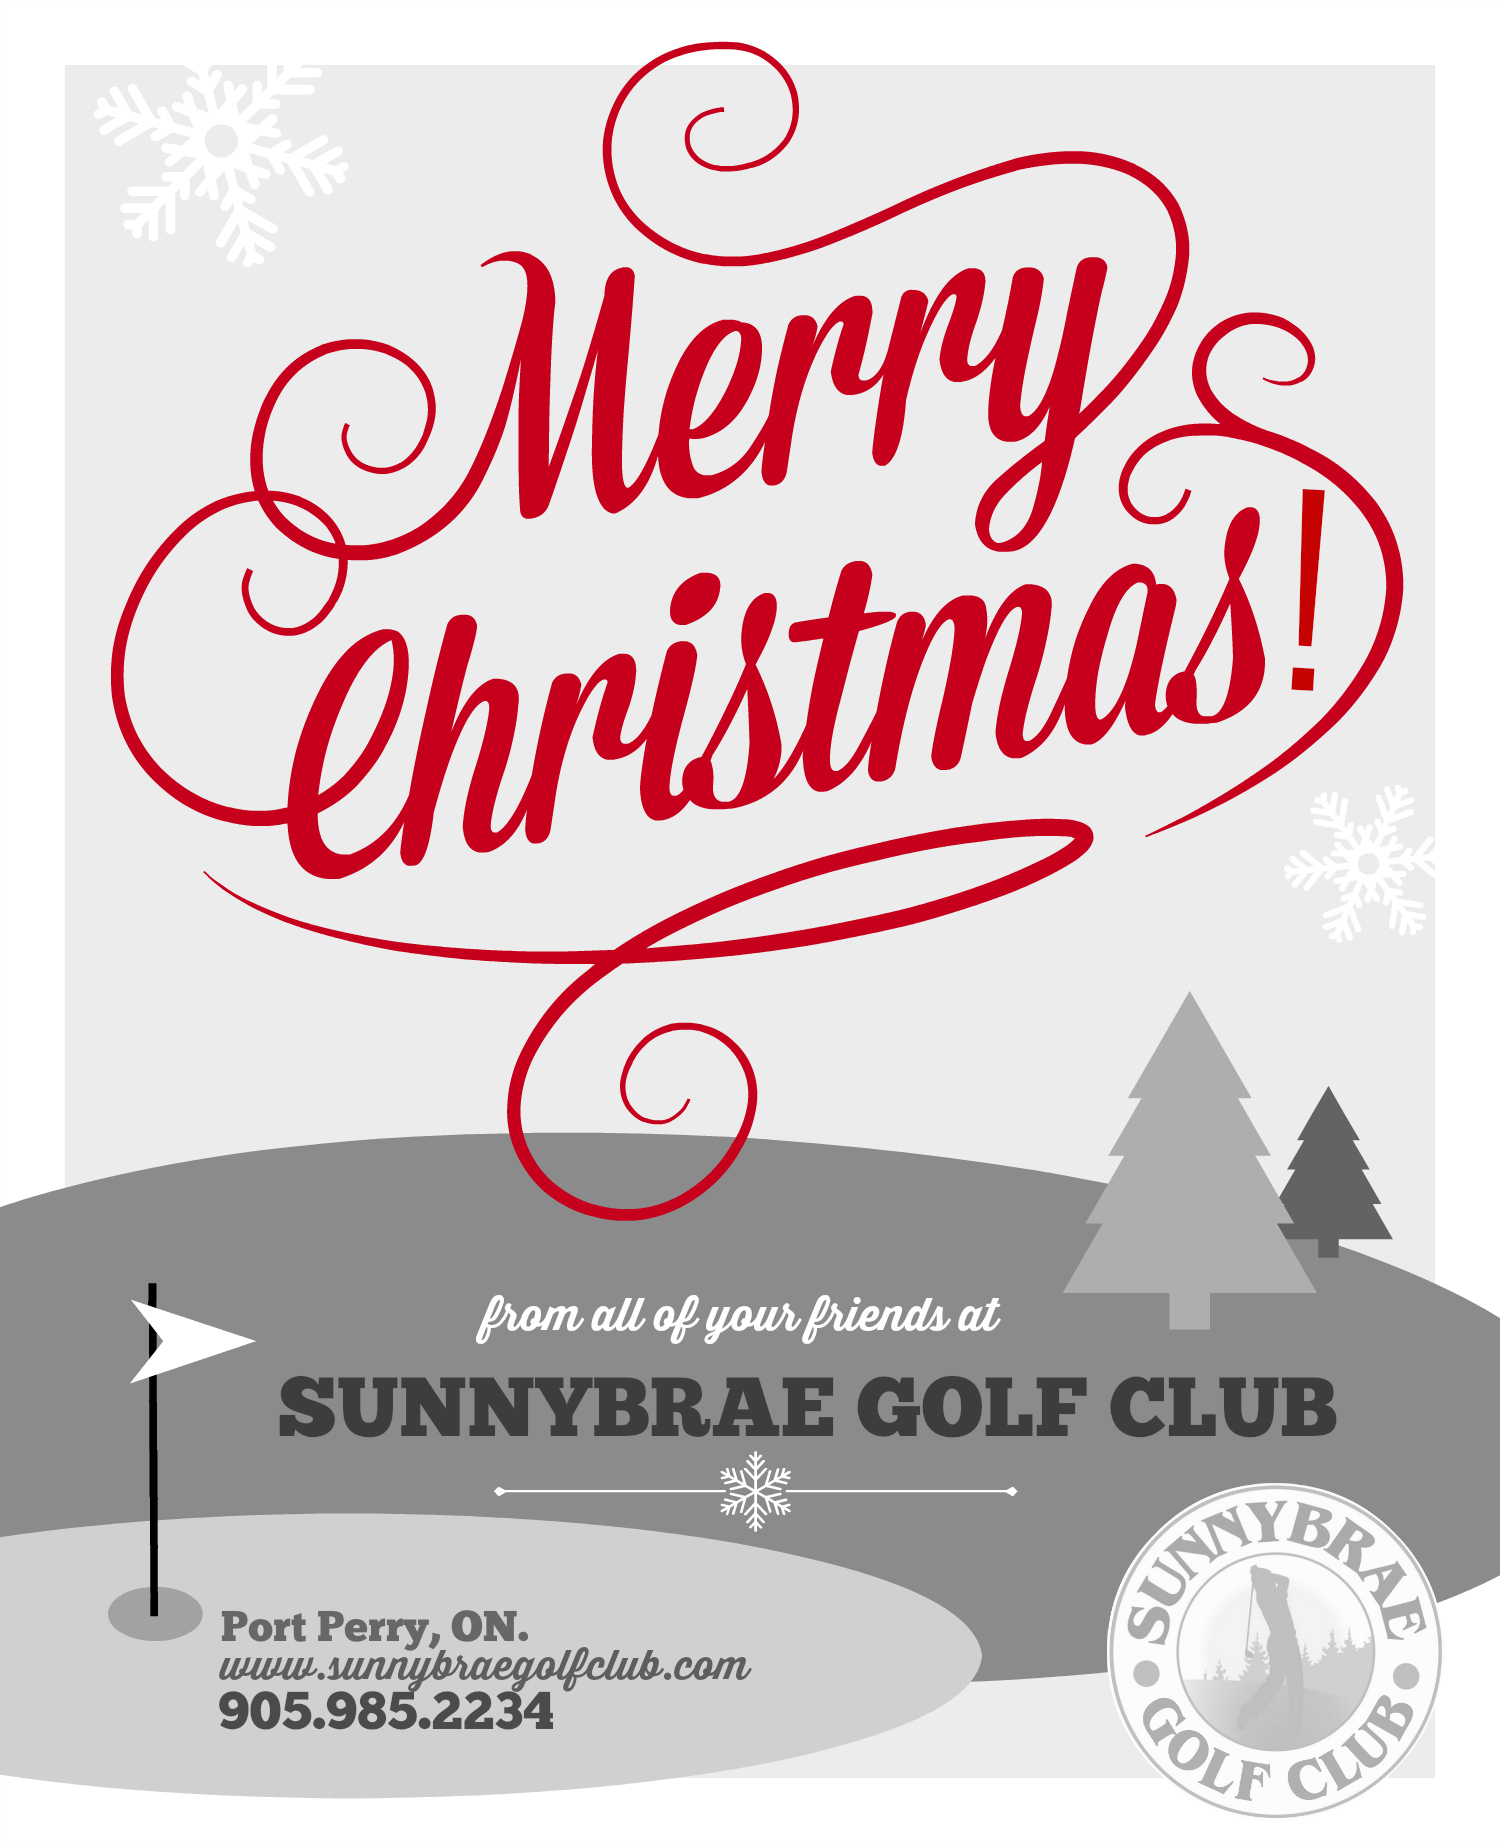 Merry Christmas from Sunnybrae Golf Club!